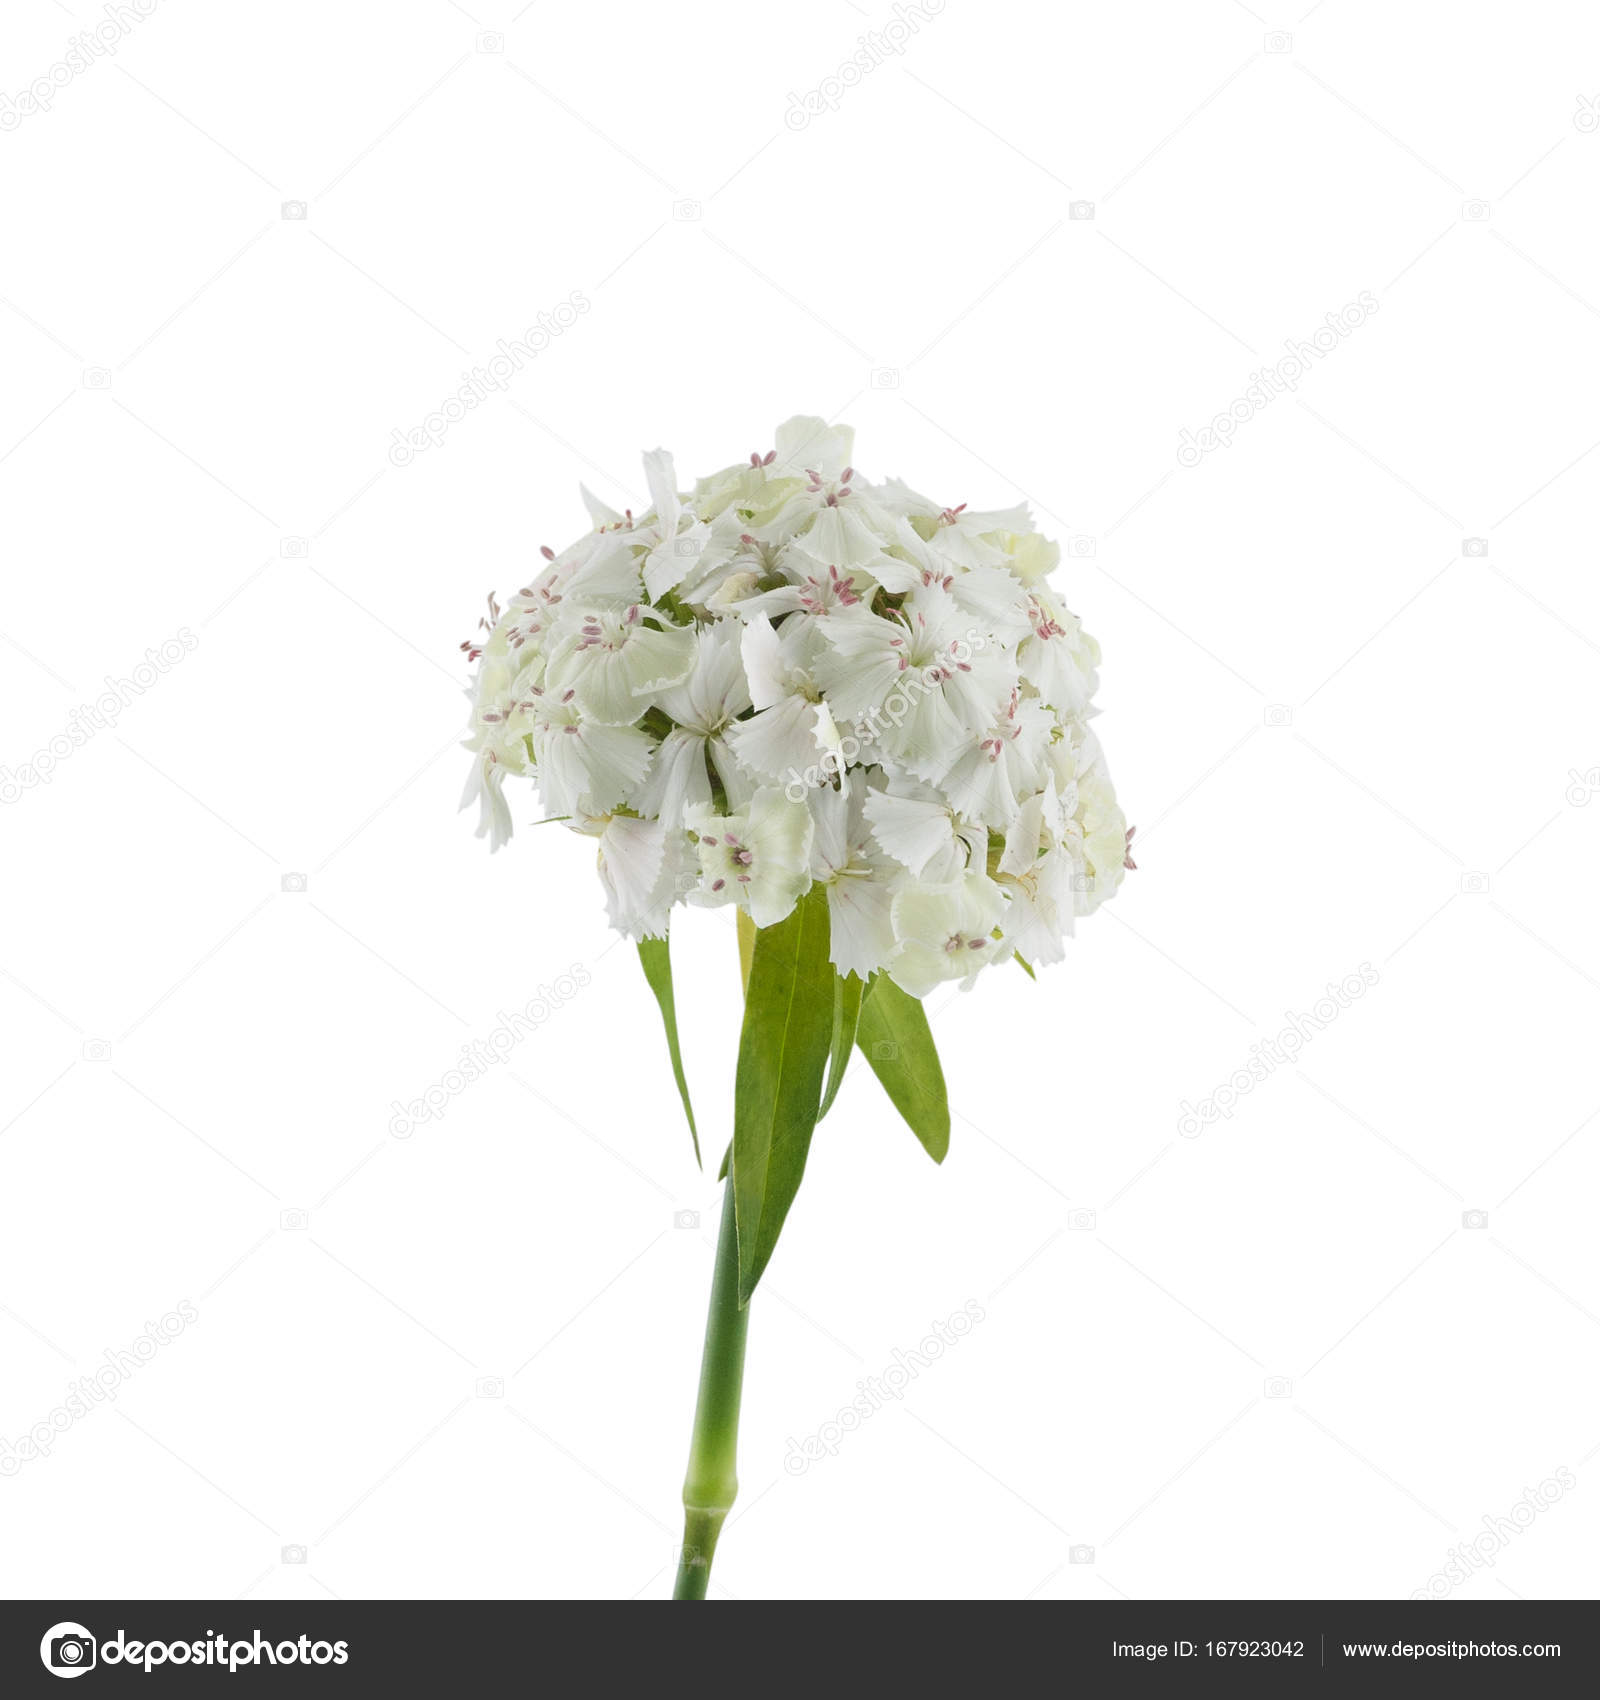 White sweet william flowers isolated on white background stock white sweet william flowers isolated on white background stock photo mightylinksfo